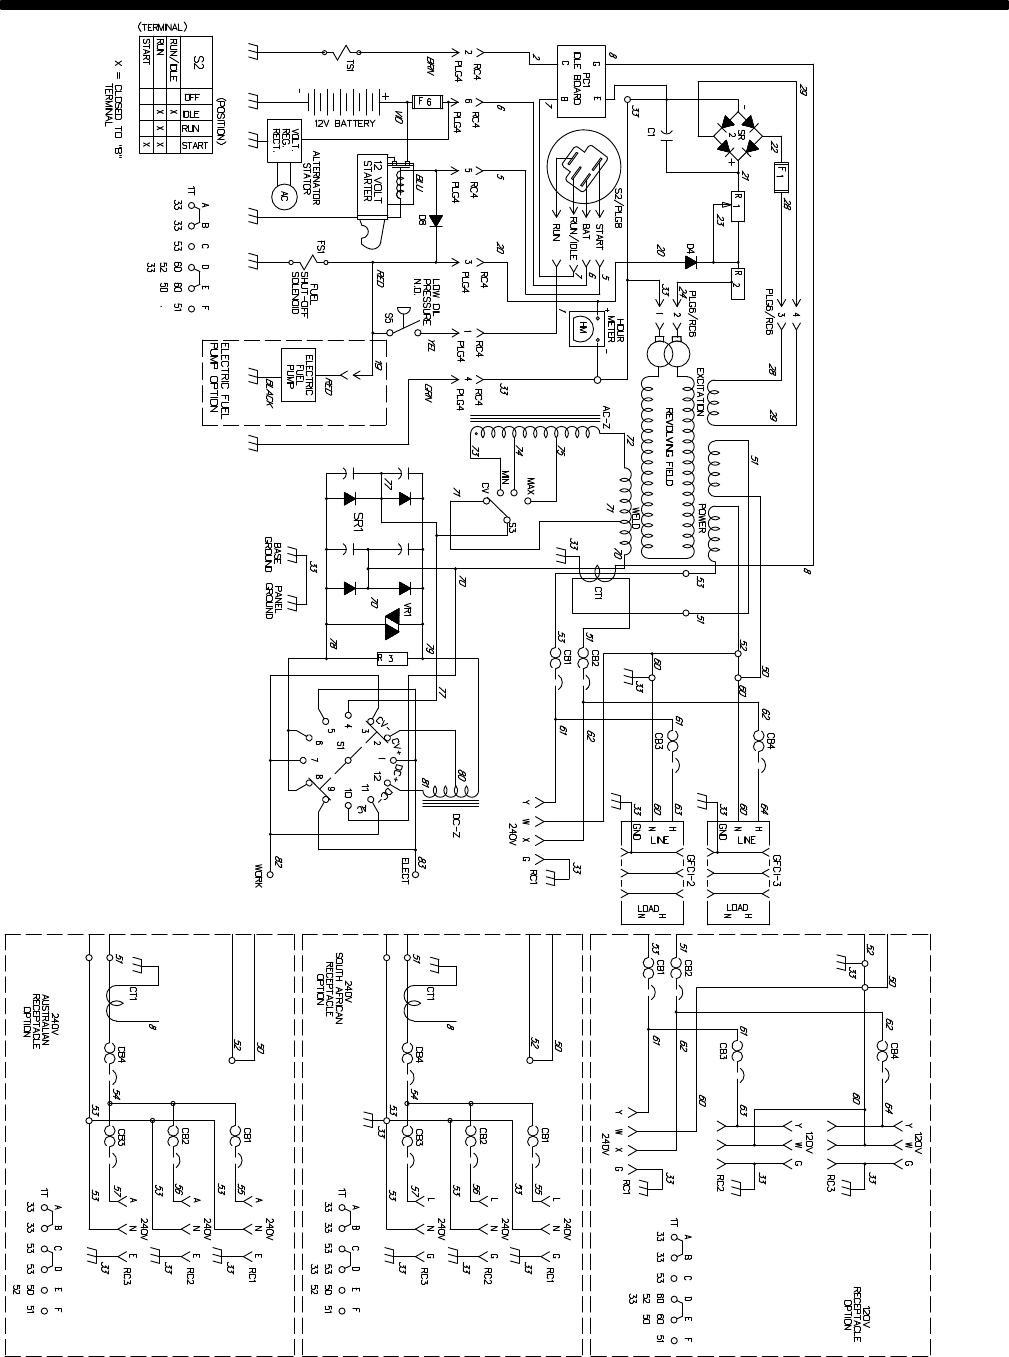 keyboard schematic with Bobcat 225g on Ps2 mouse and basic st   puter together with Mac 512klogicboard moreover Keyboard Not Working On Raspberry Pi 2 Model B furthermore TRS80 Model 100 further Ldf9810st 10.